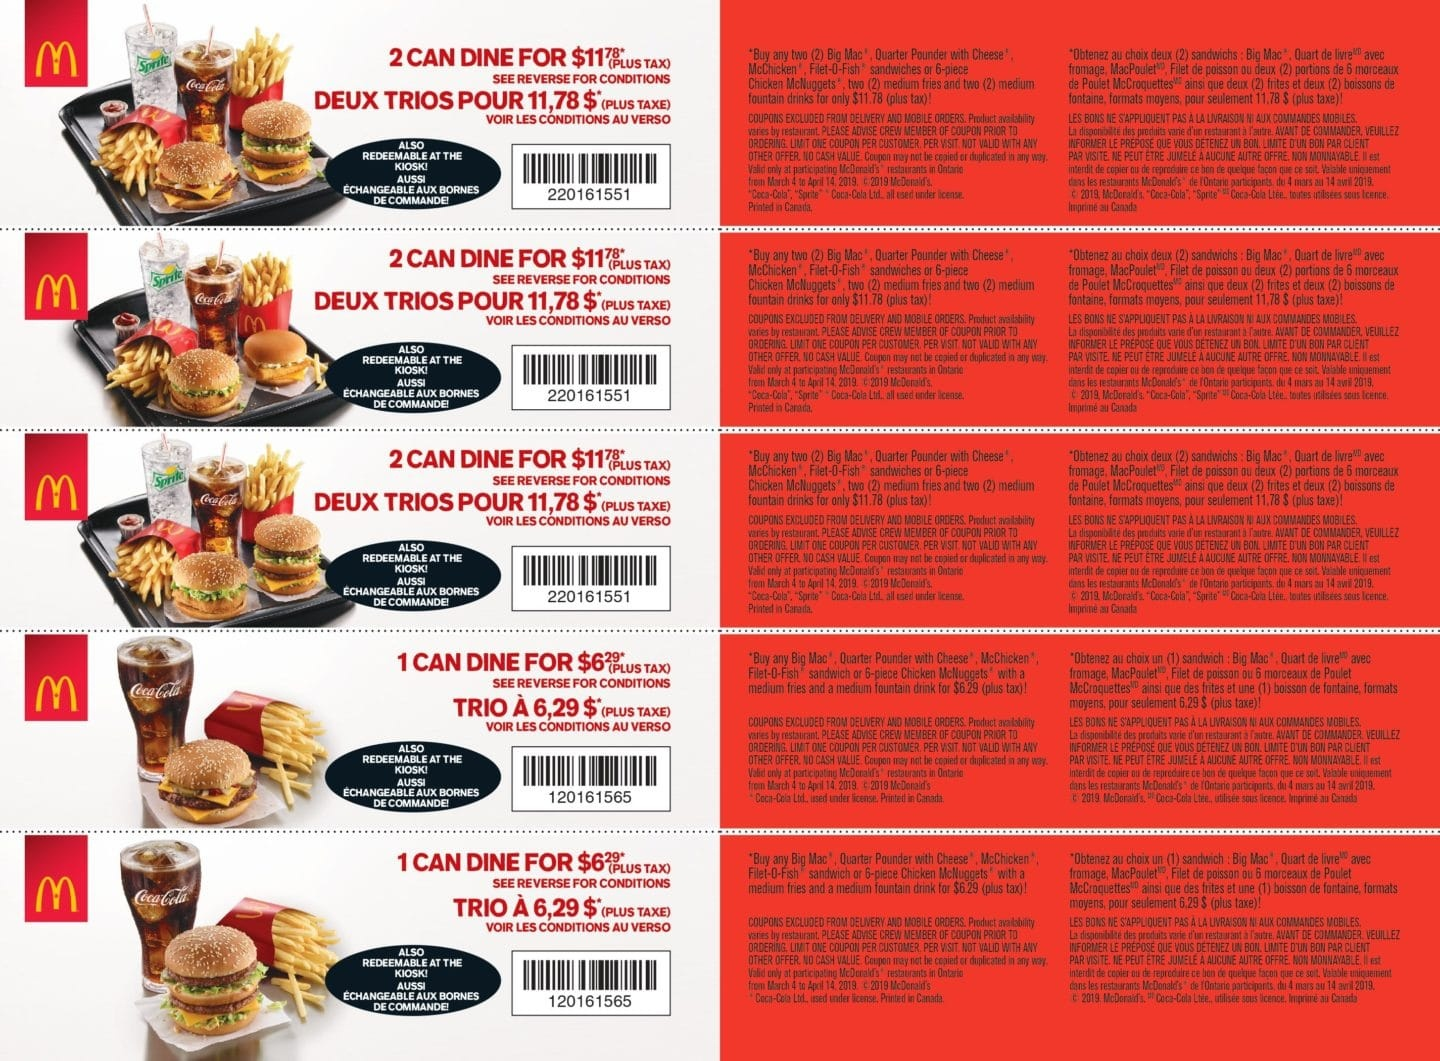 Mcdonald's Canada Deals - Buy 1 And Get 1 50% Off Breakfast Sandwich - Free Printable Coupons Ontario